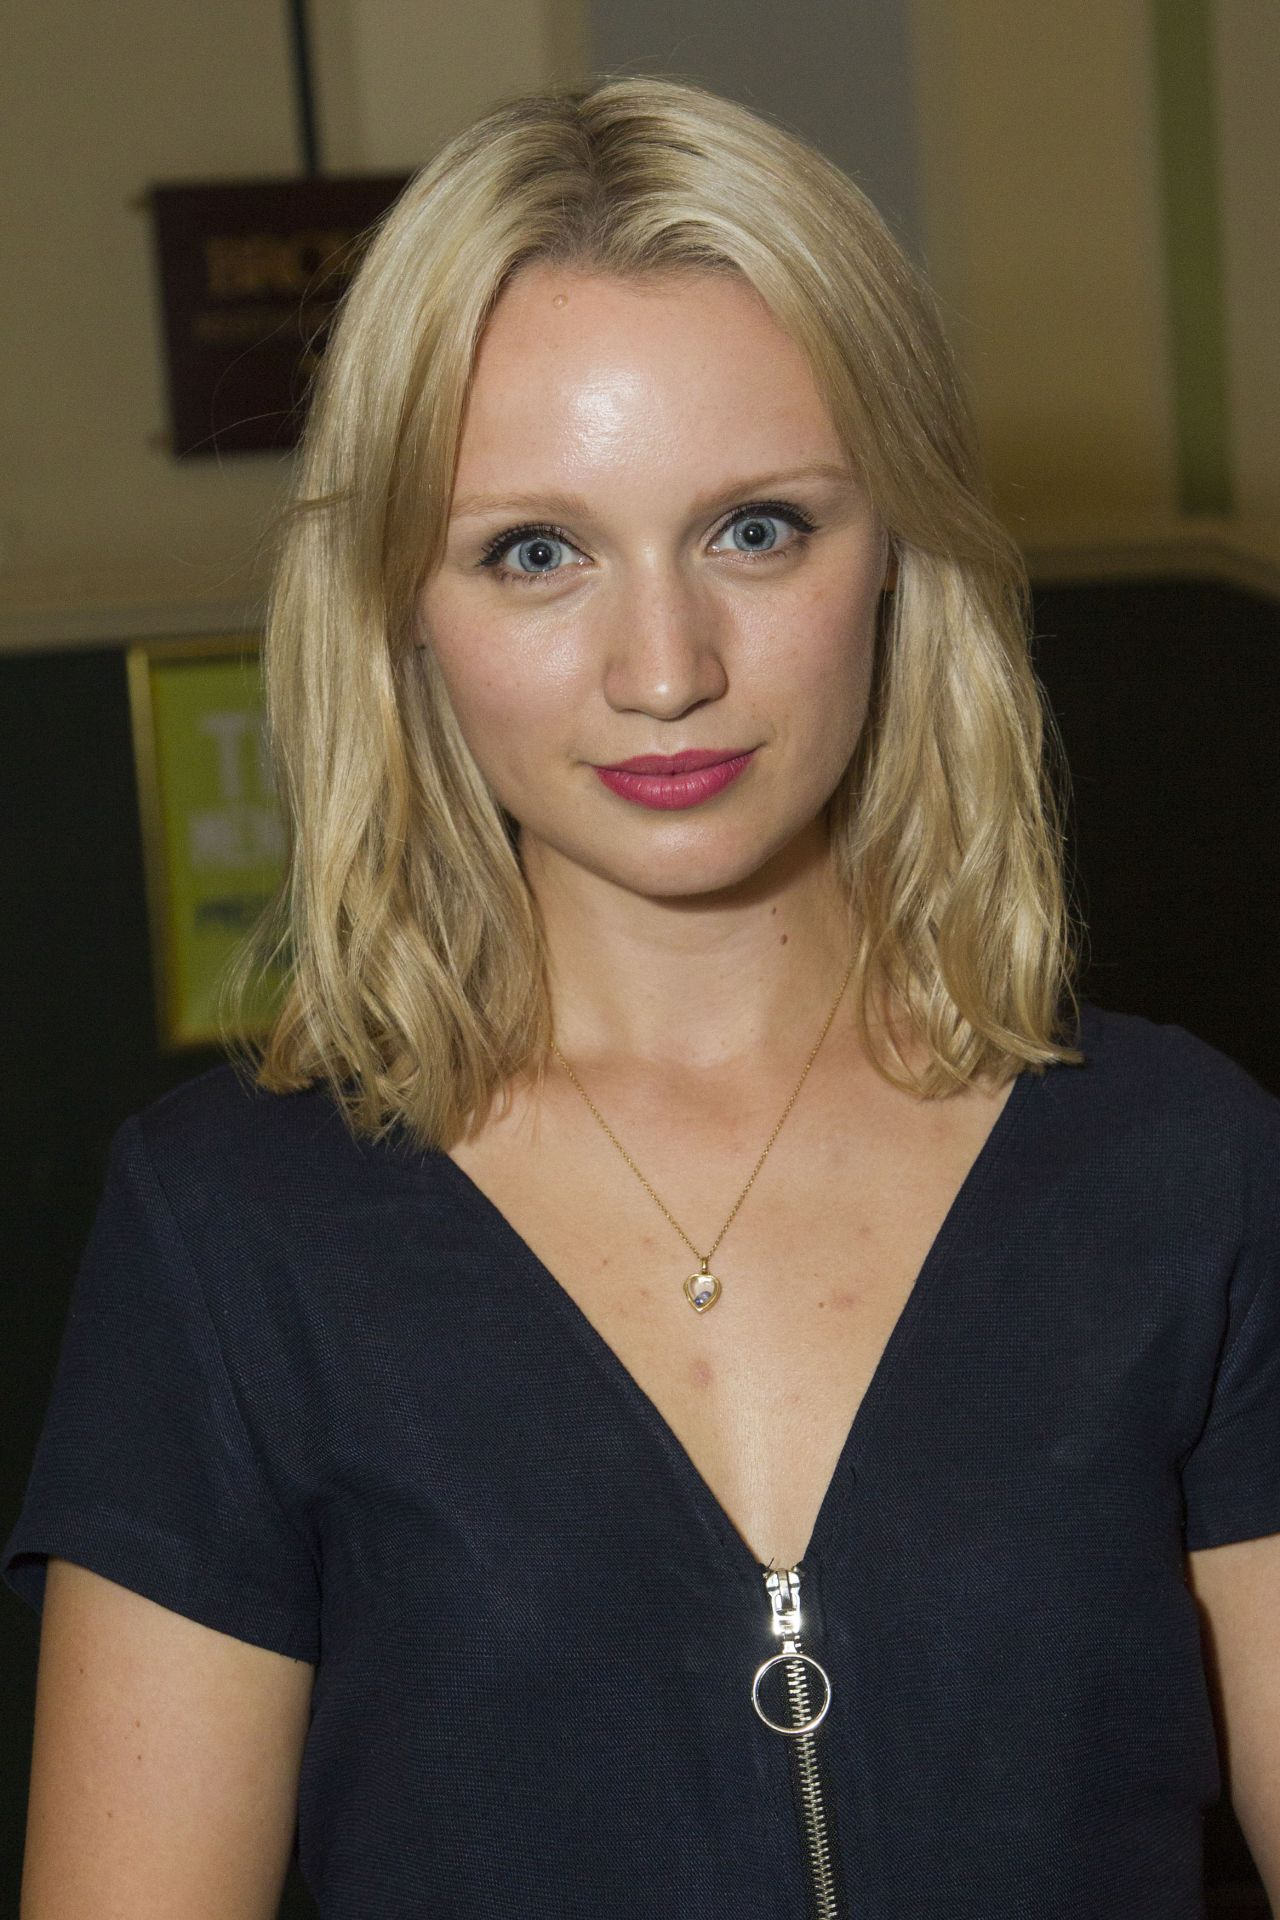 Photos Emily Berrington naked (42 photo), Ass, Bikini, Boobs, braless 2018